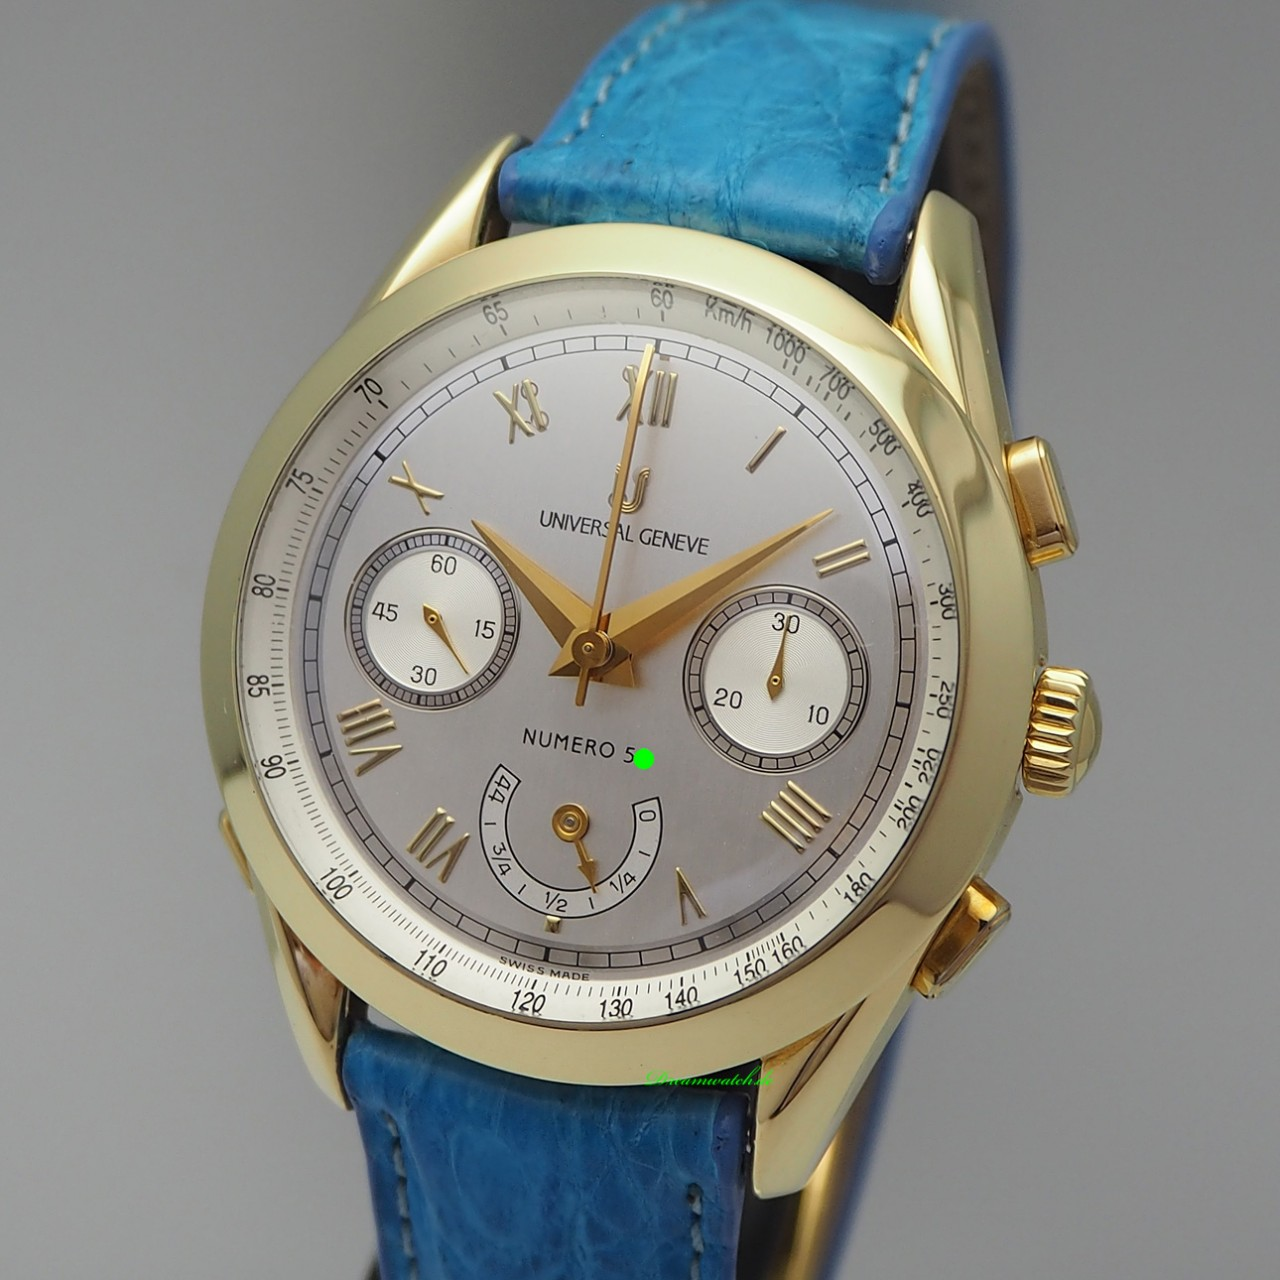 """Universal Geneve Rattrapante """"Master -Tech"""" Chronograph Limited Edition -Gold 18k/750"""